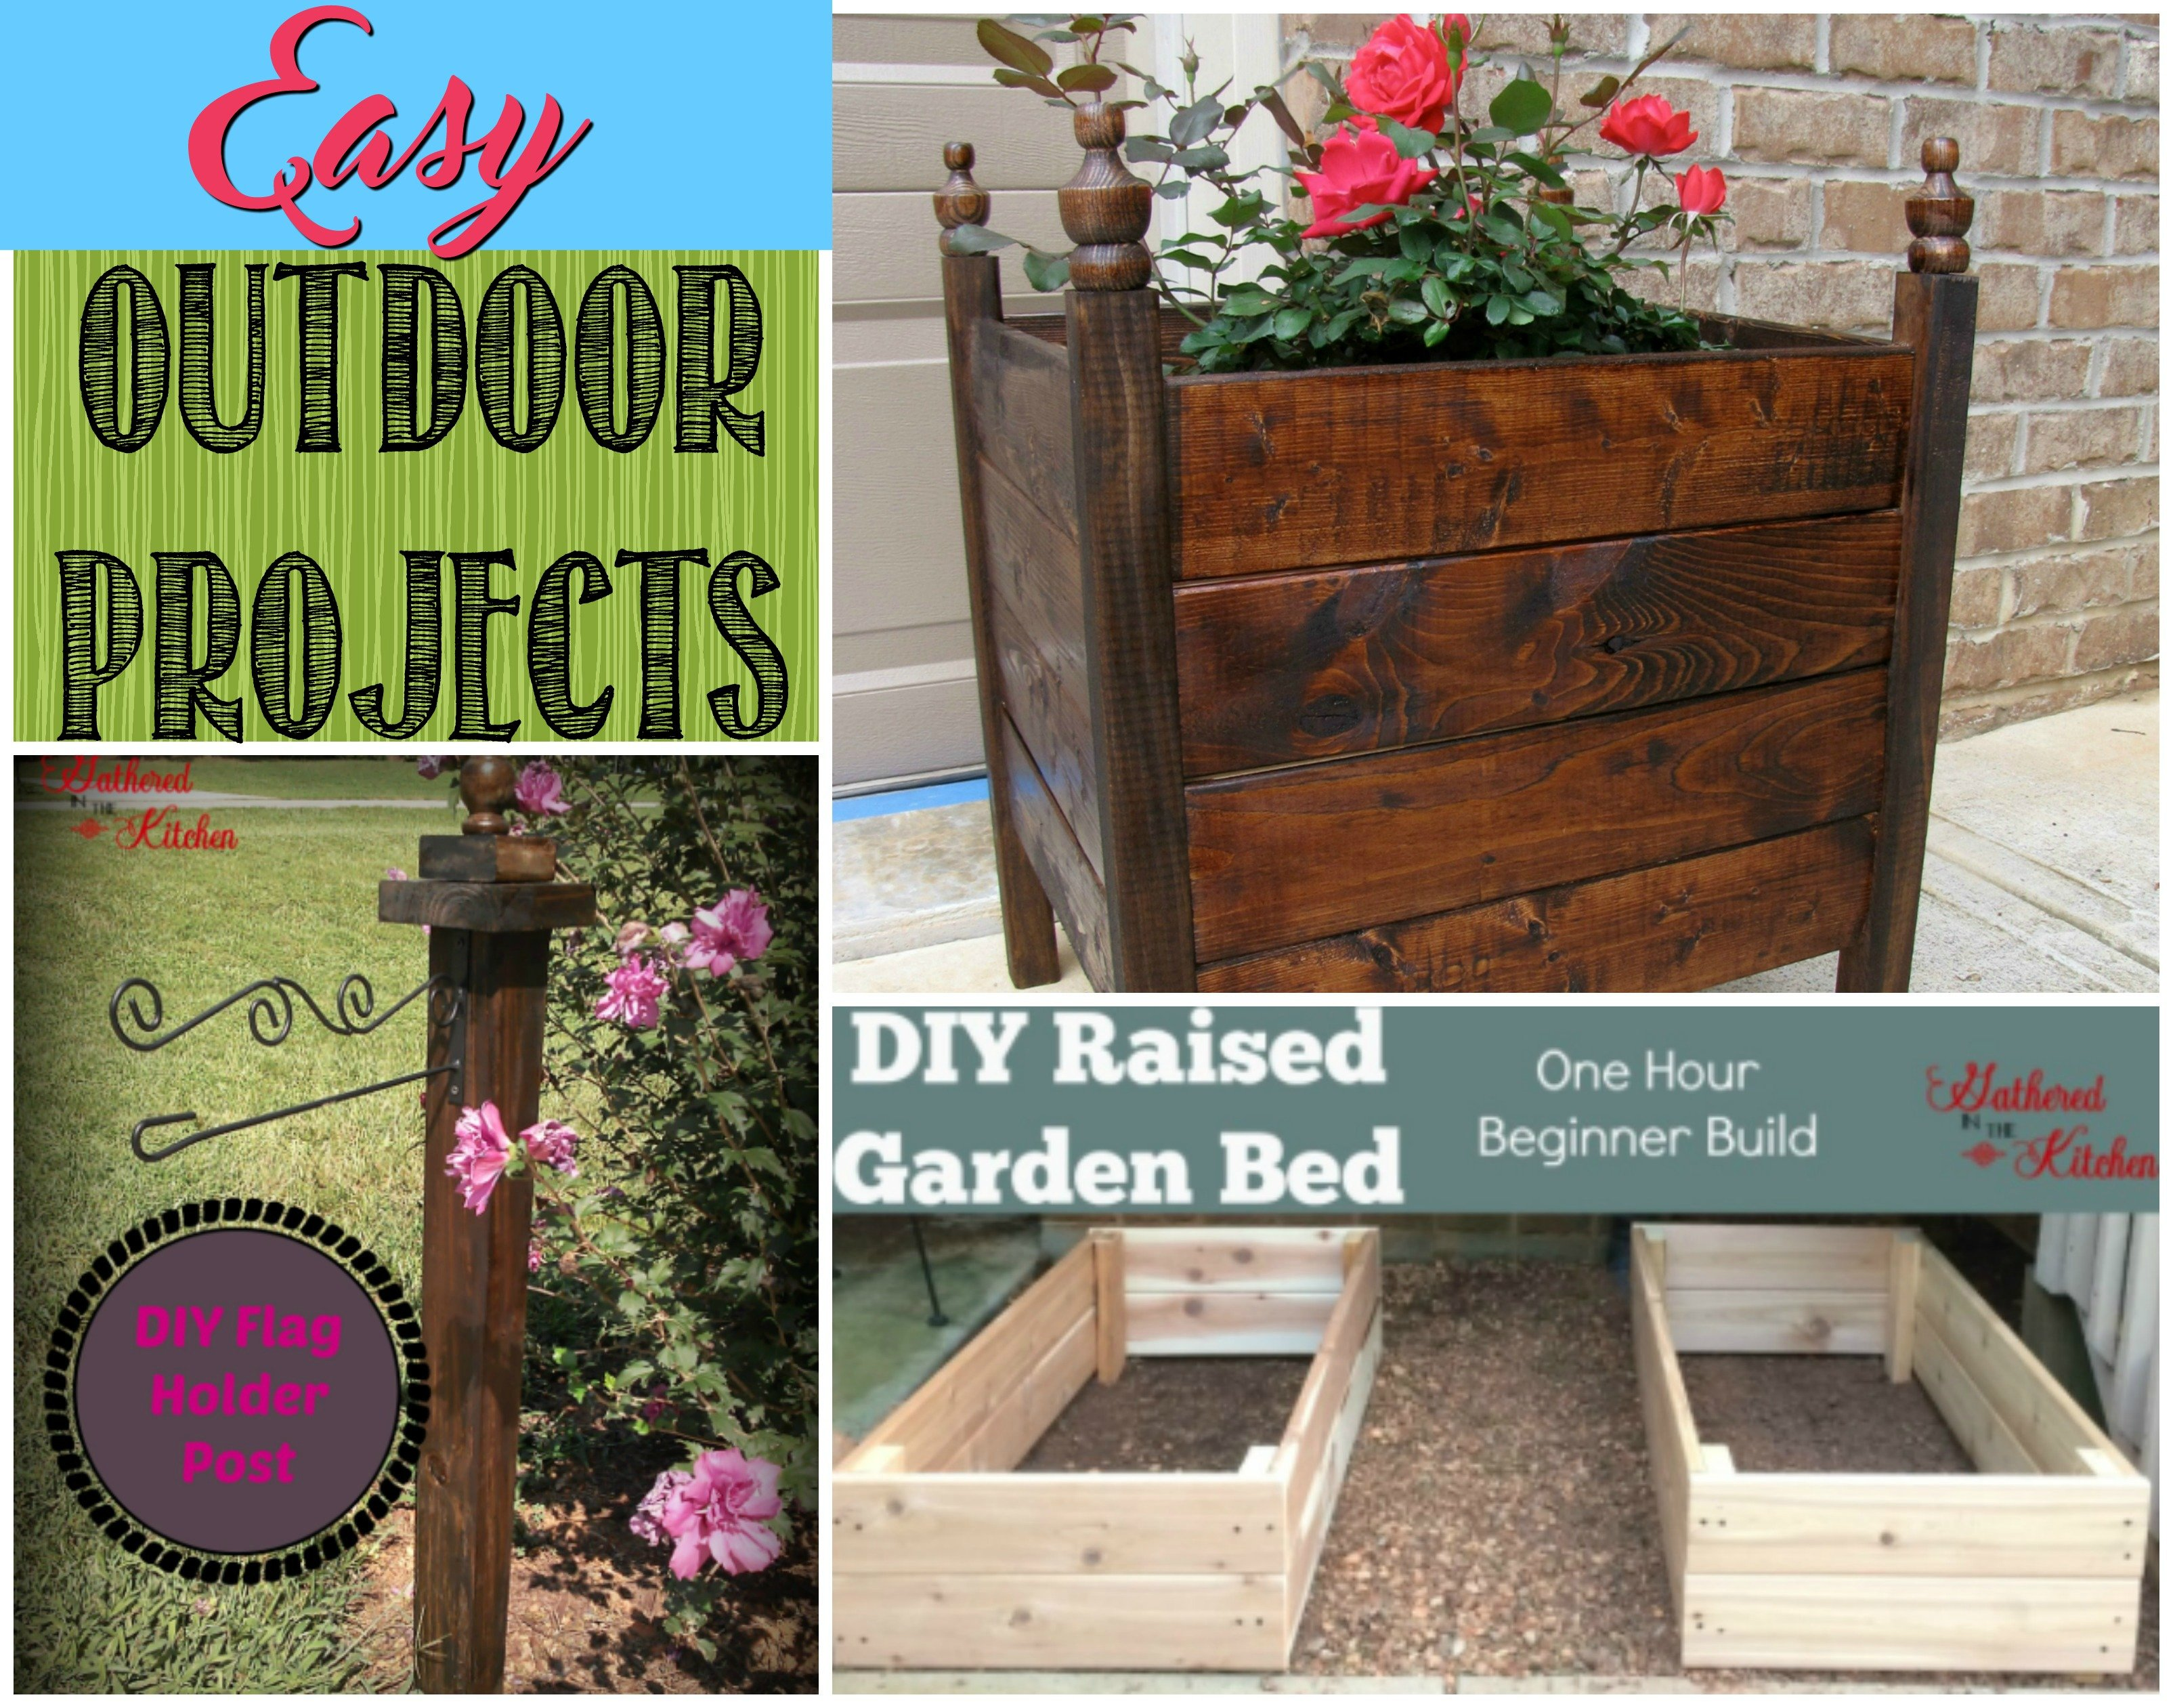 Easy Diy Outdoor Projects Gathered In